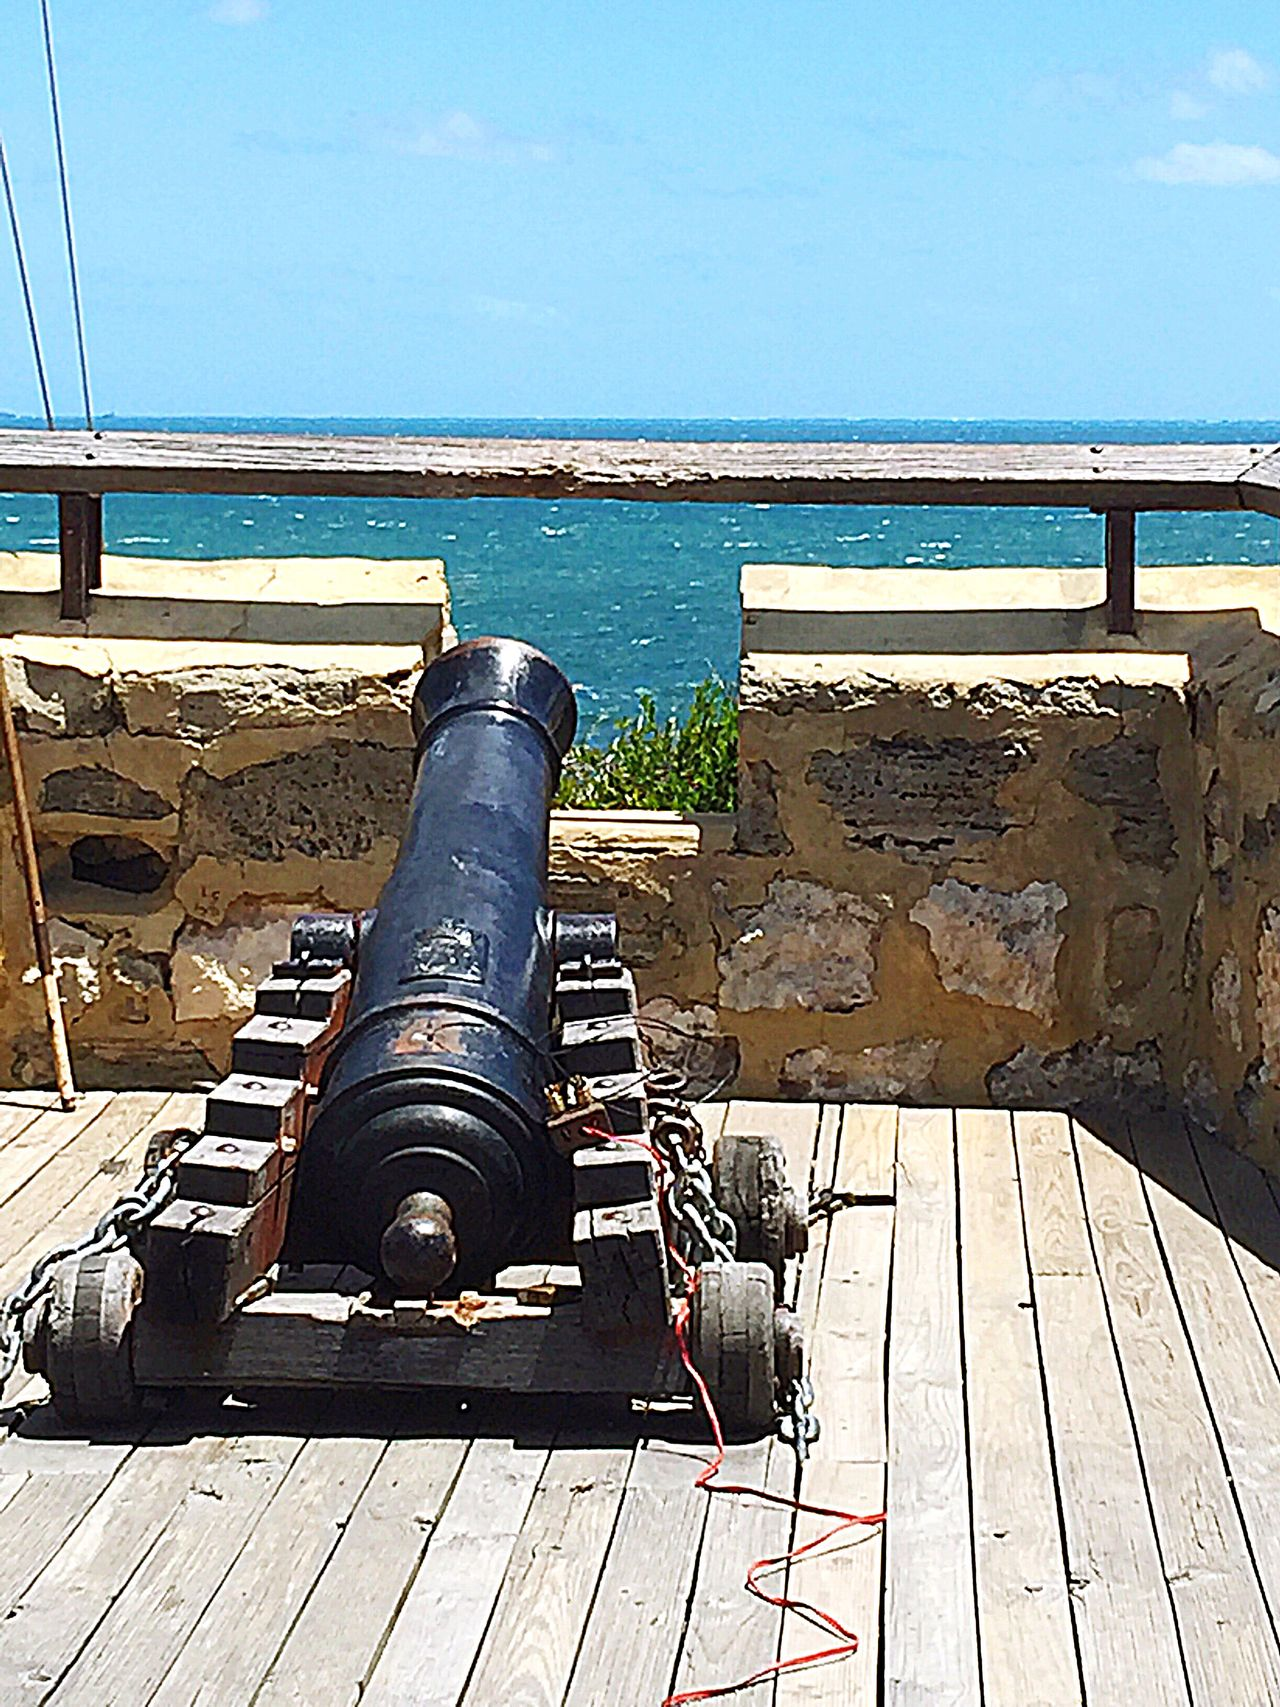 Cannon: Ready to Fire Military Cannon Ready Gunnery Fire Cannon Cannon Western Australia Cannon Indian Ocean Cannon Beach Cannon Fremantle Round House Fremantle Round House Cannon Cannon